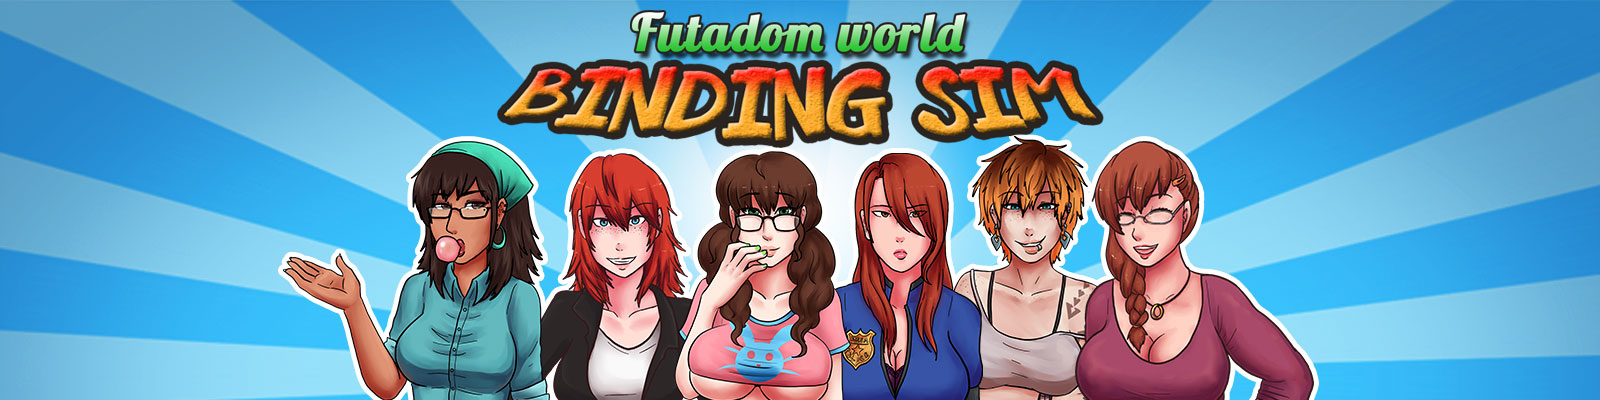 FutadomWorld - Binding Sim v0.1